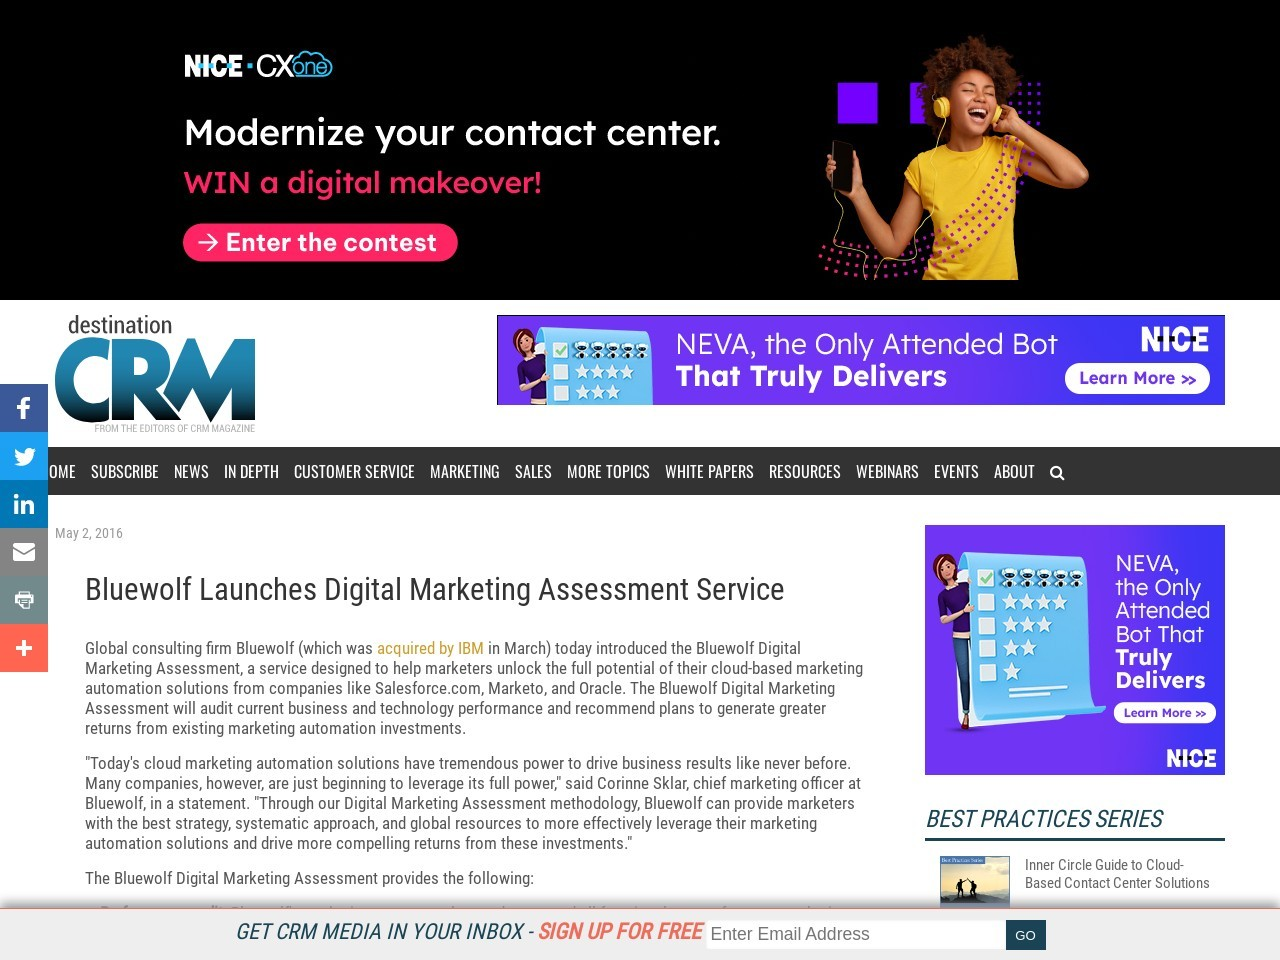 Bluewolf Launches Digital Marketing Assessment Service